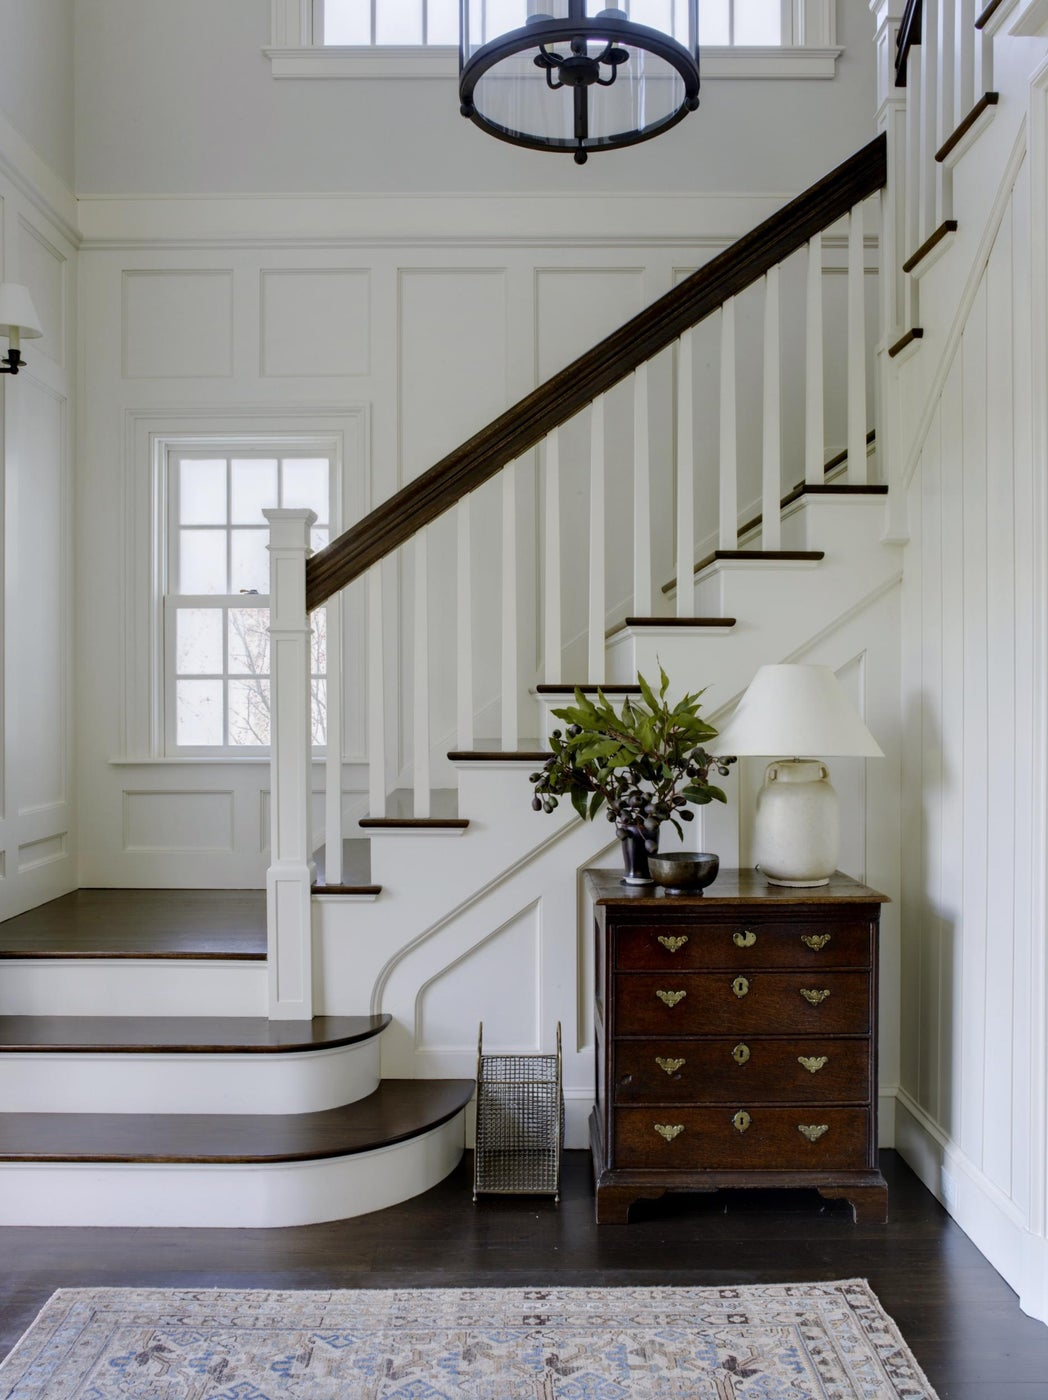 A simple stair case with wall paneling